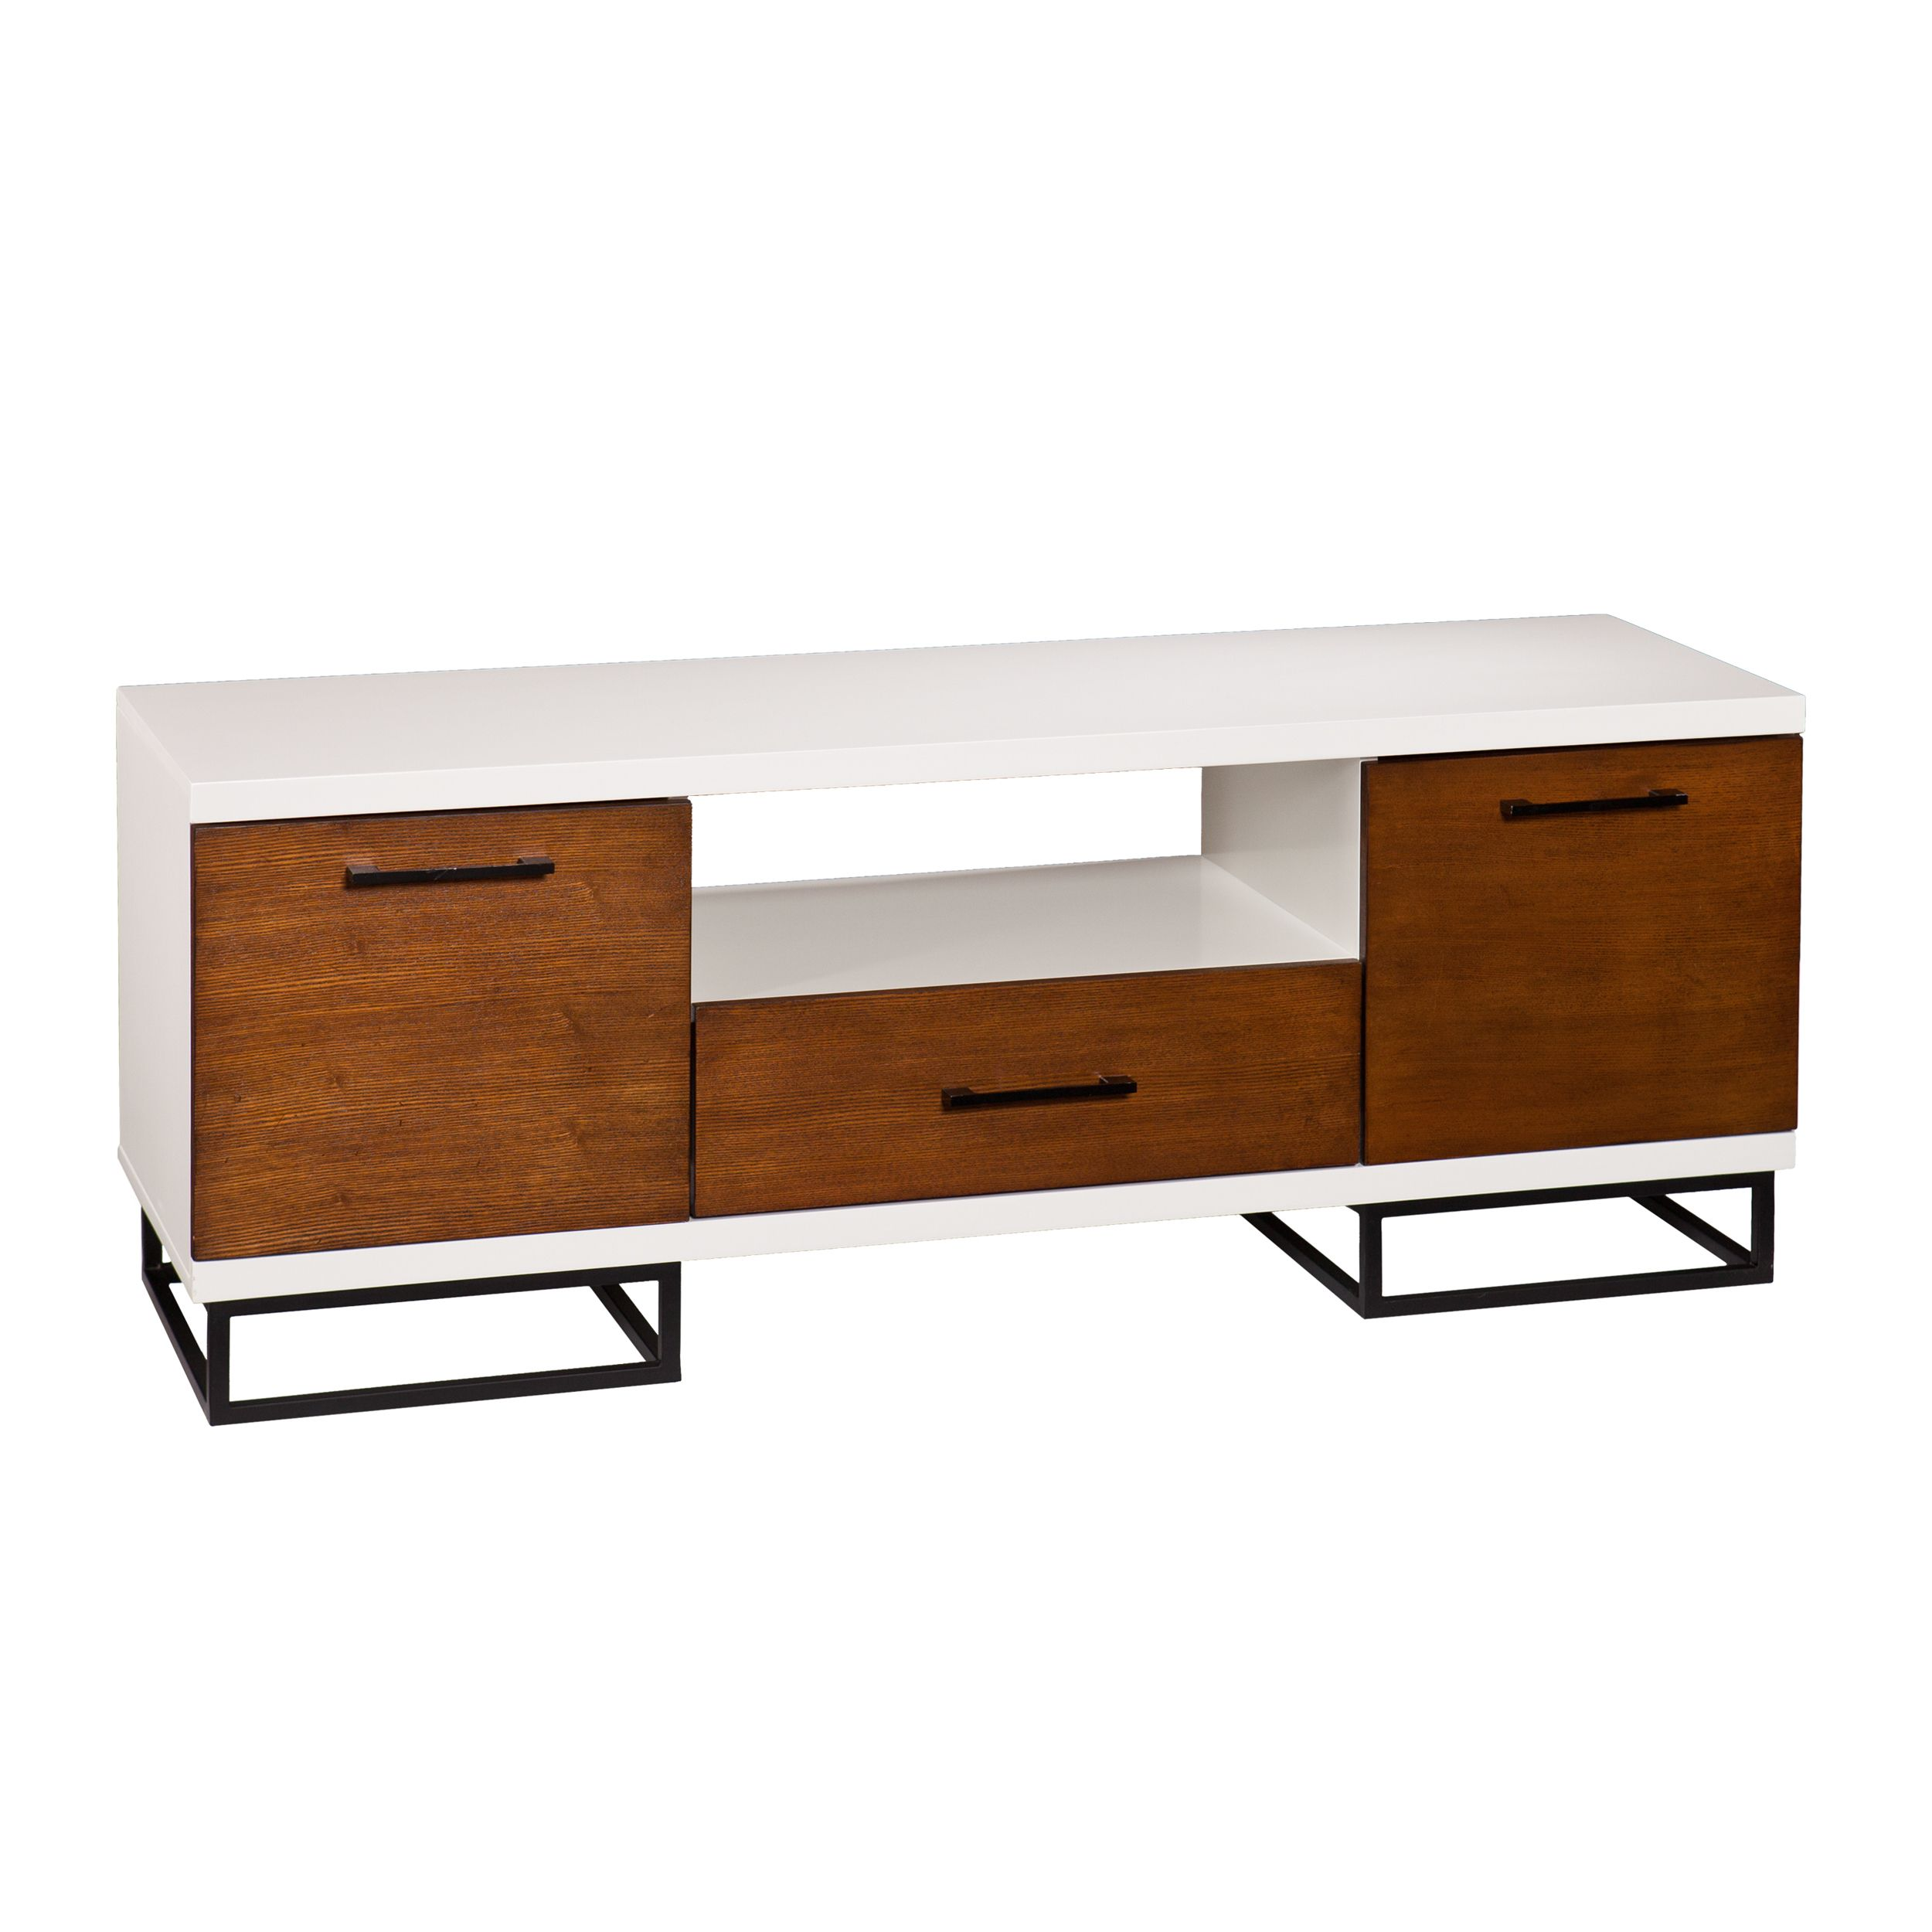 This Low Profile Media Console Features A Crisp White Body And Wood Grain Textured Fronts In Contrasting Dark Finish Linear Black Metal Pulls Add